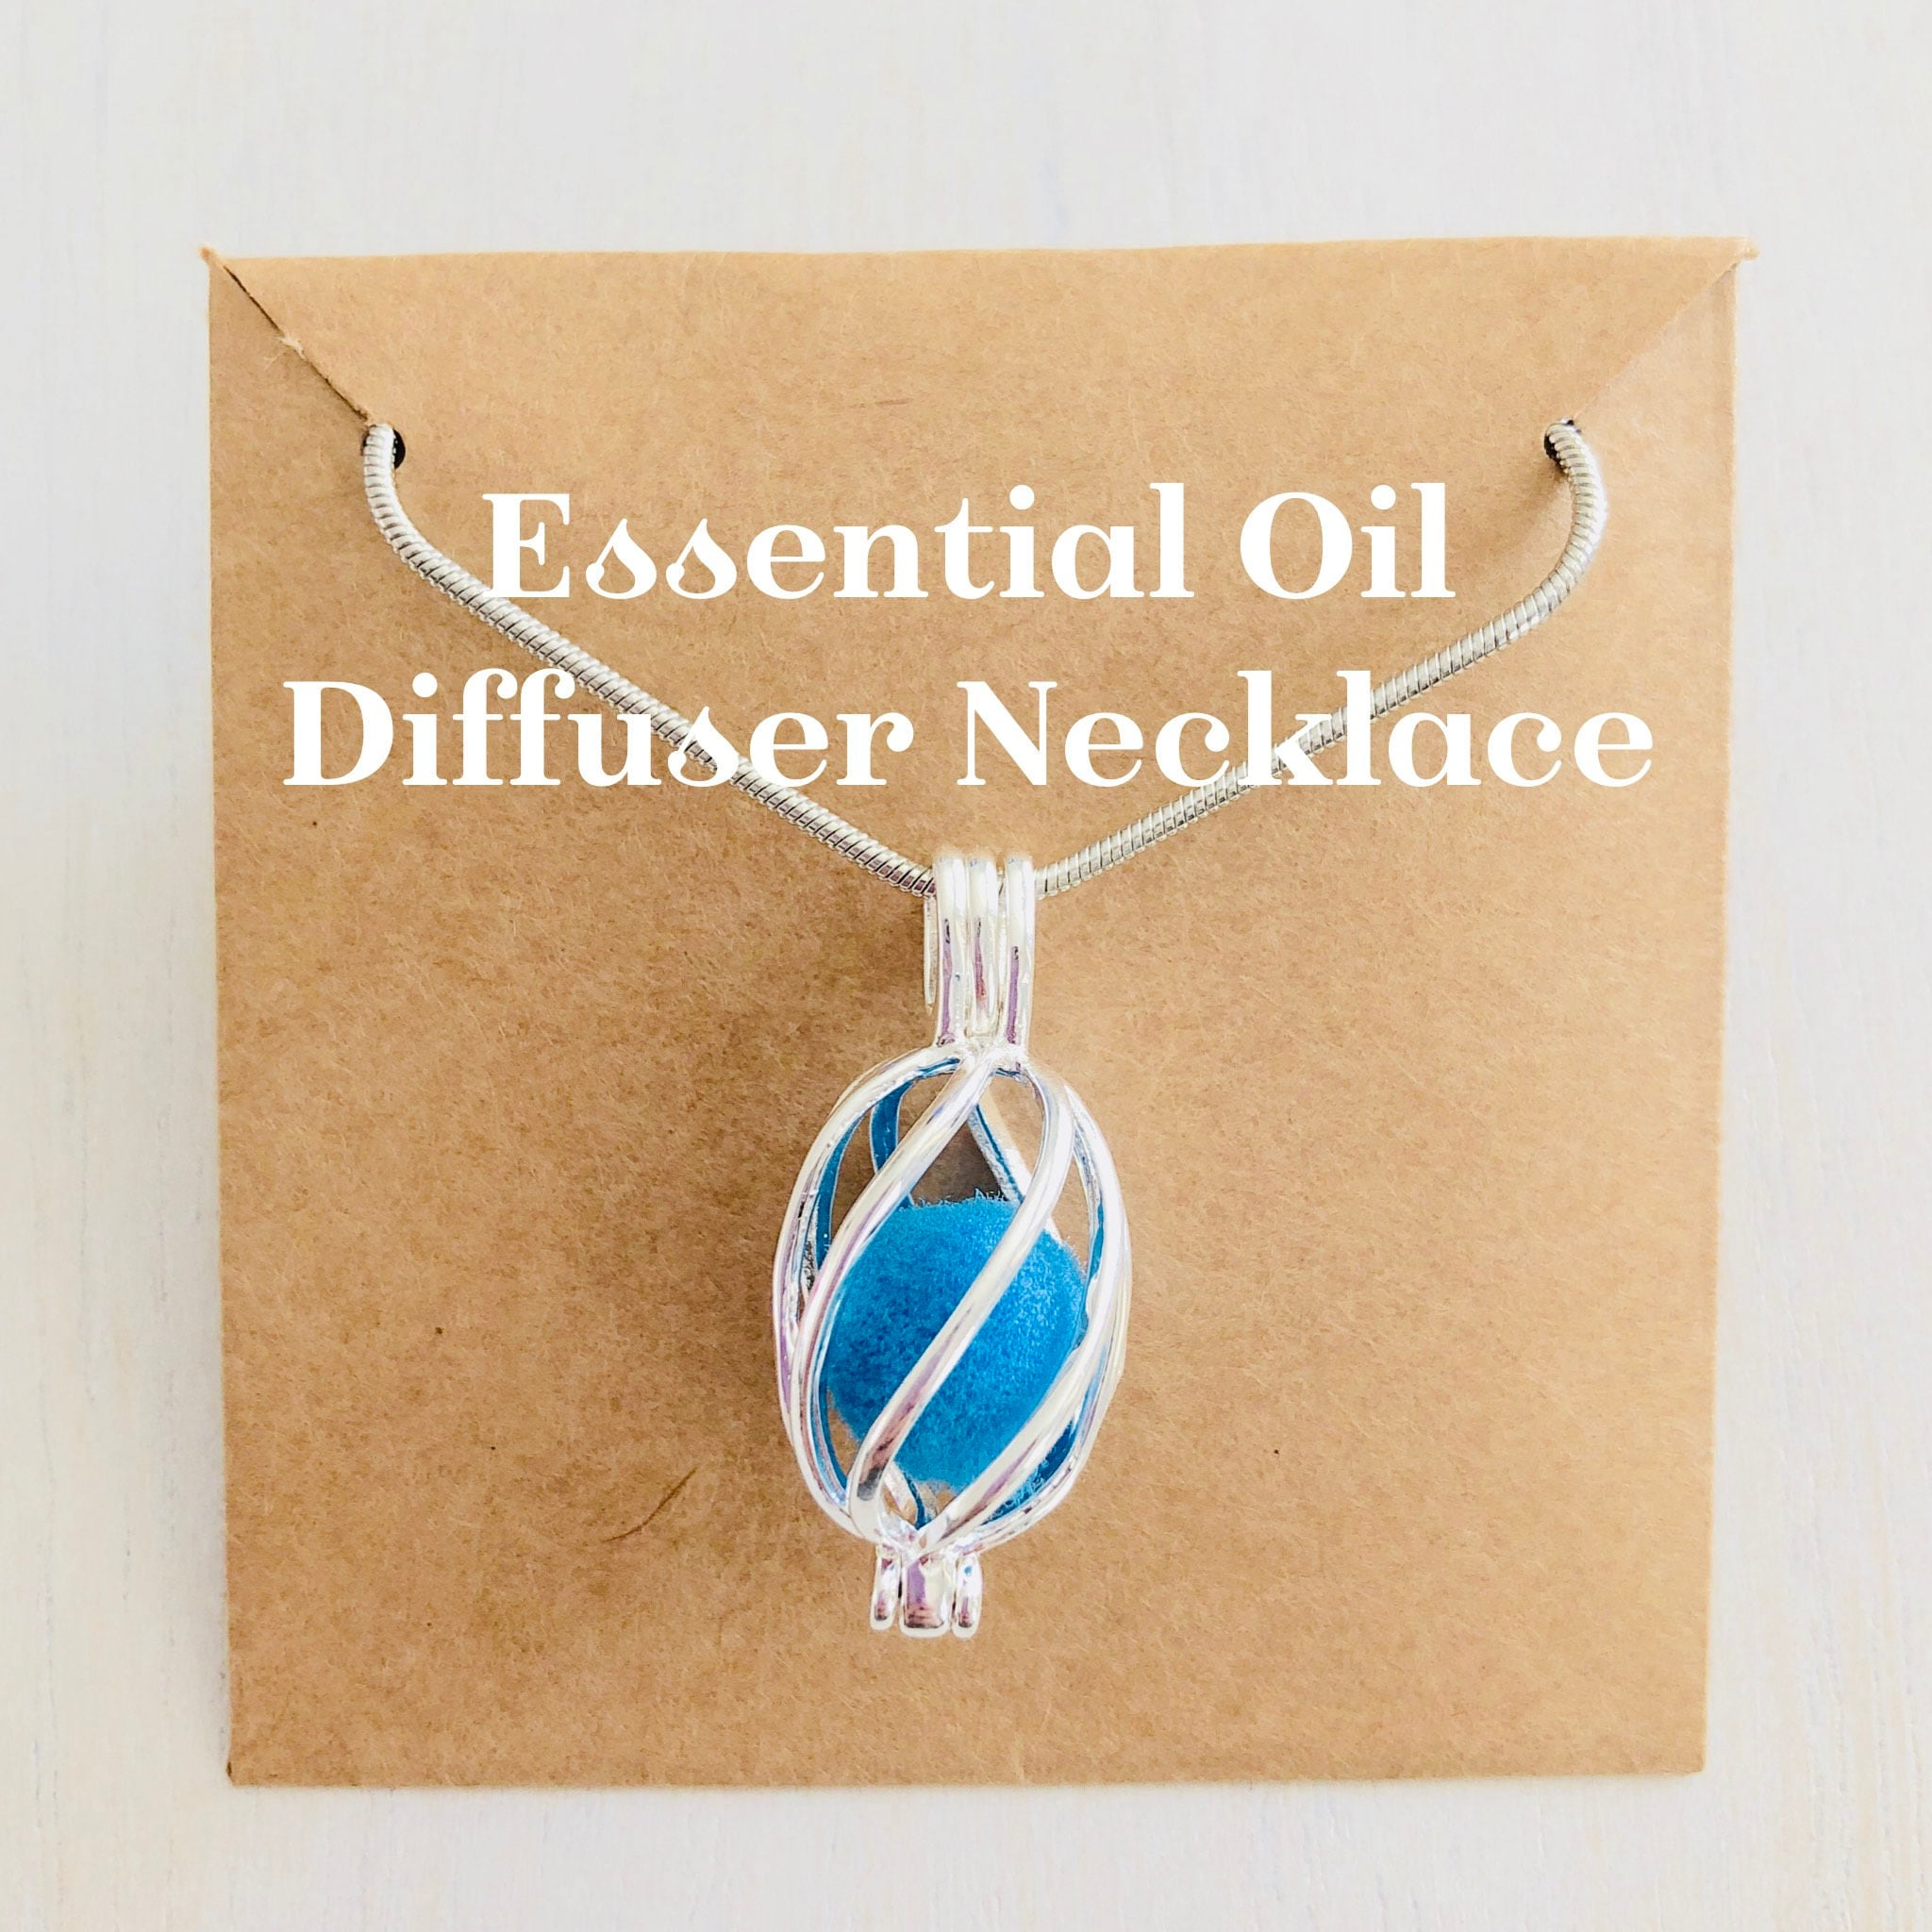 copper products essential bronze silver diffuser free oil aromatherapy necklace